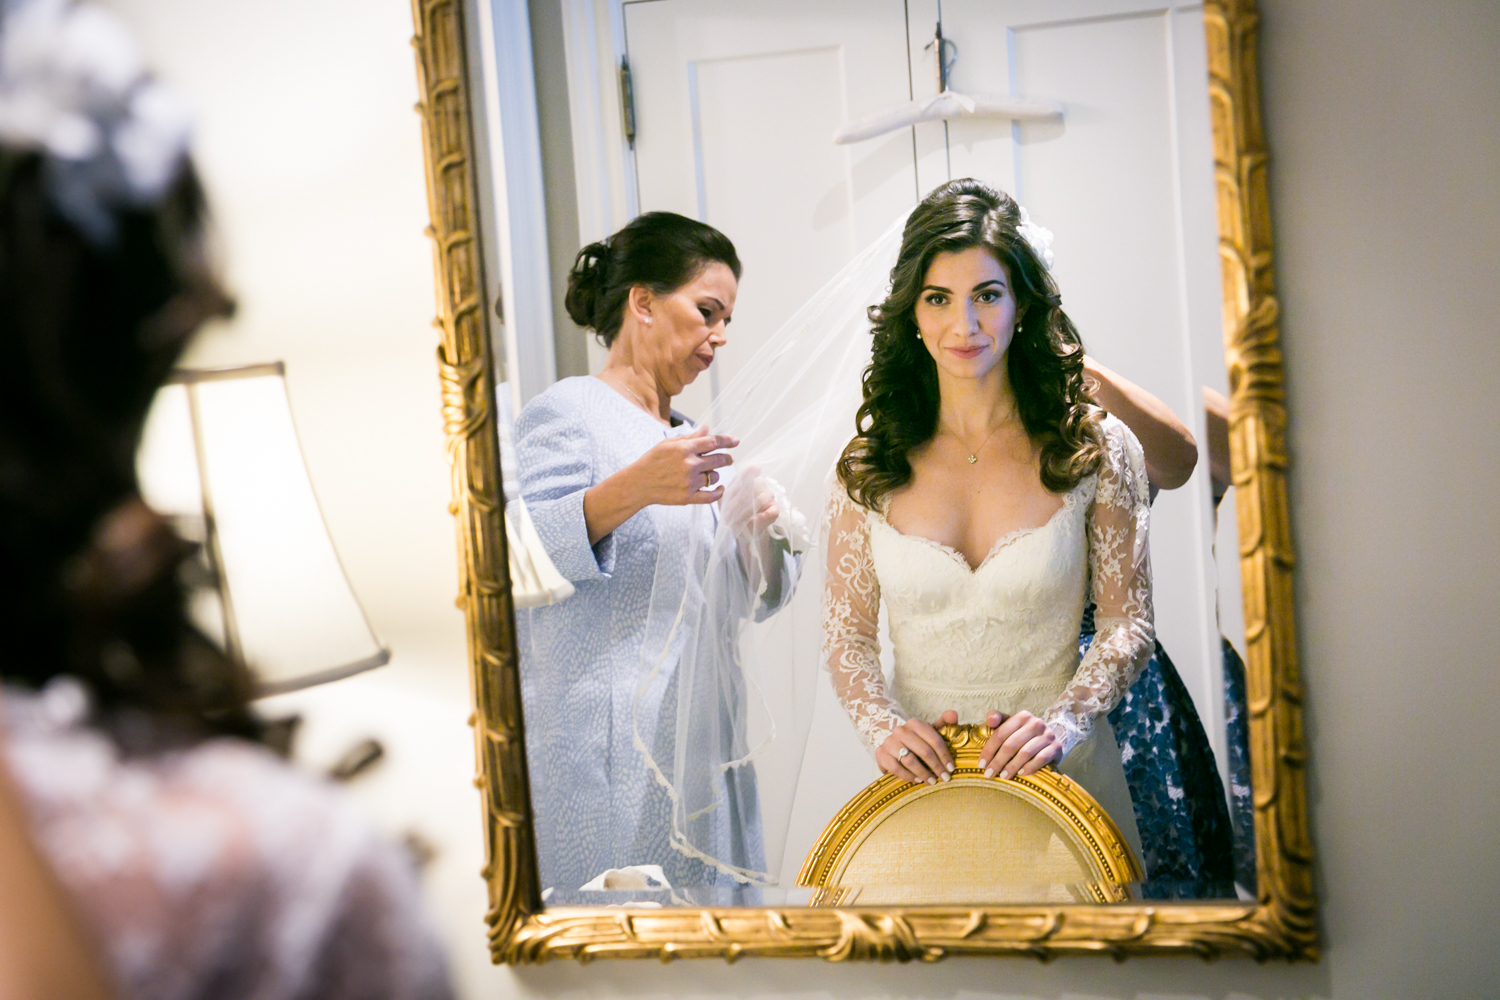 Reflection of bride in mirror putting on veil at a Loeb Boathouse wedding in Central Park